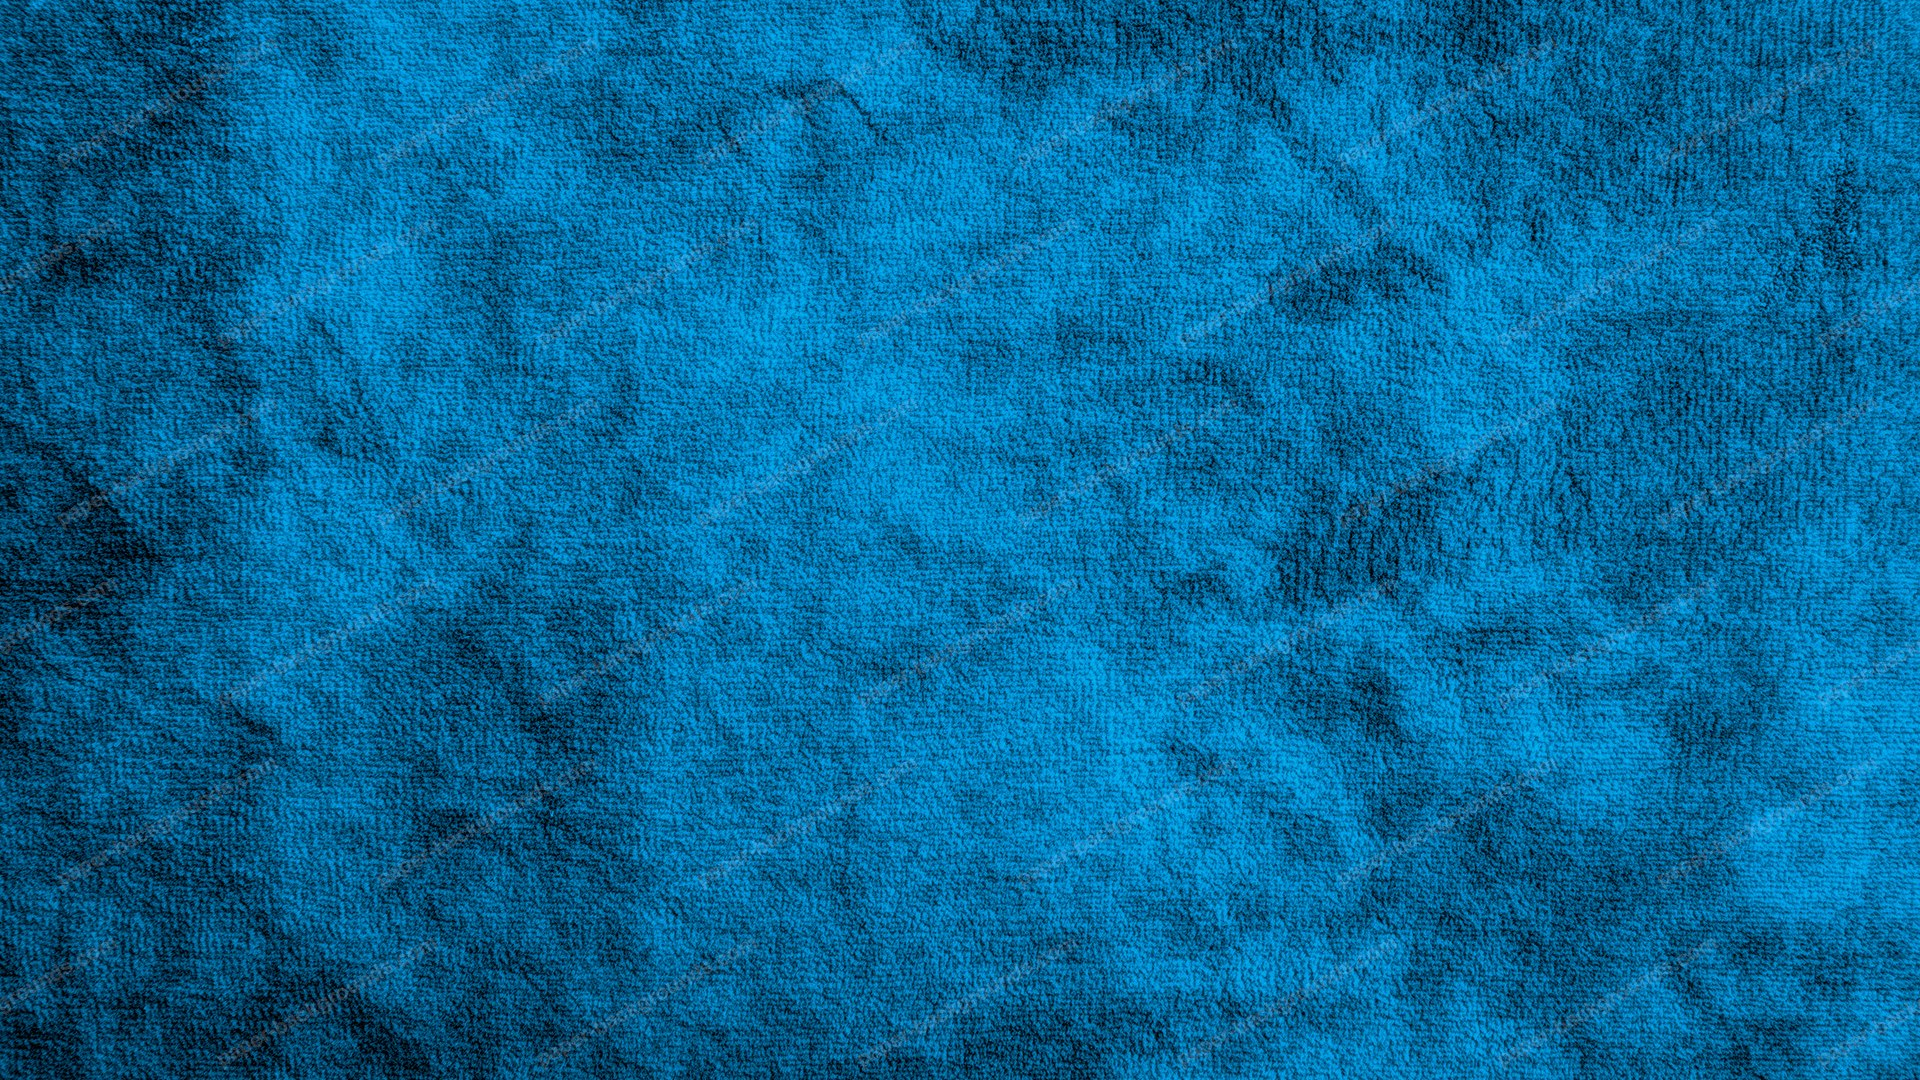 Light Blue Fine Carpet Texture HD 1920 x 1080p